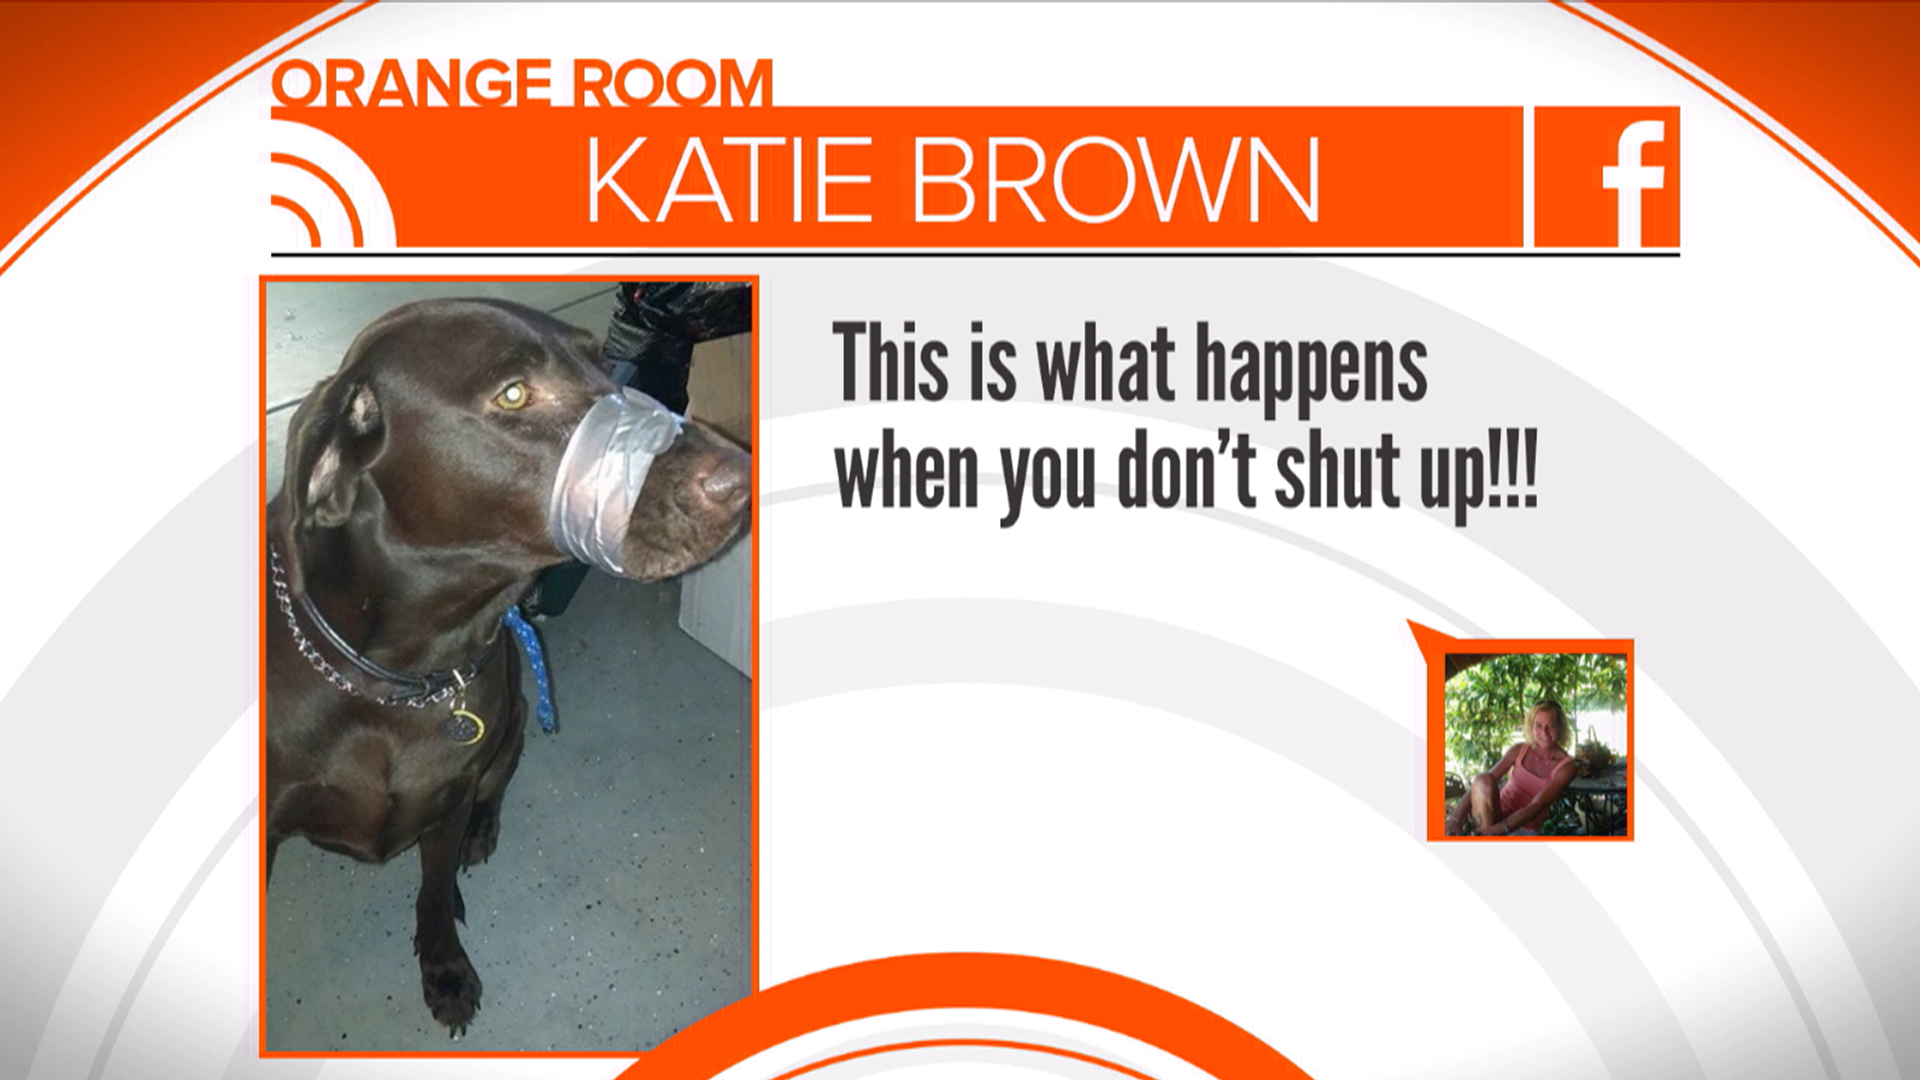 Florida Police Investigate Photo of Dog With Duct-Taped Mouth